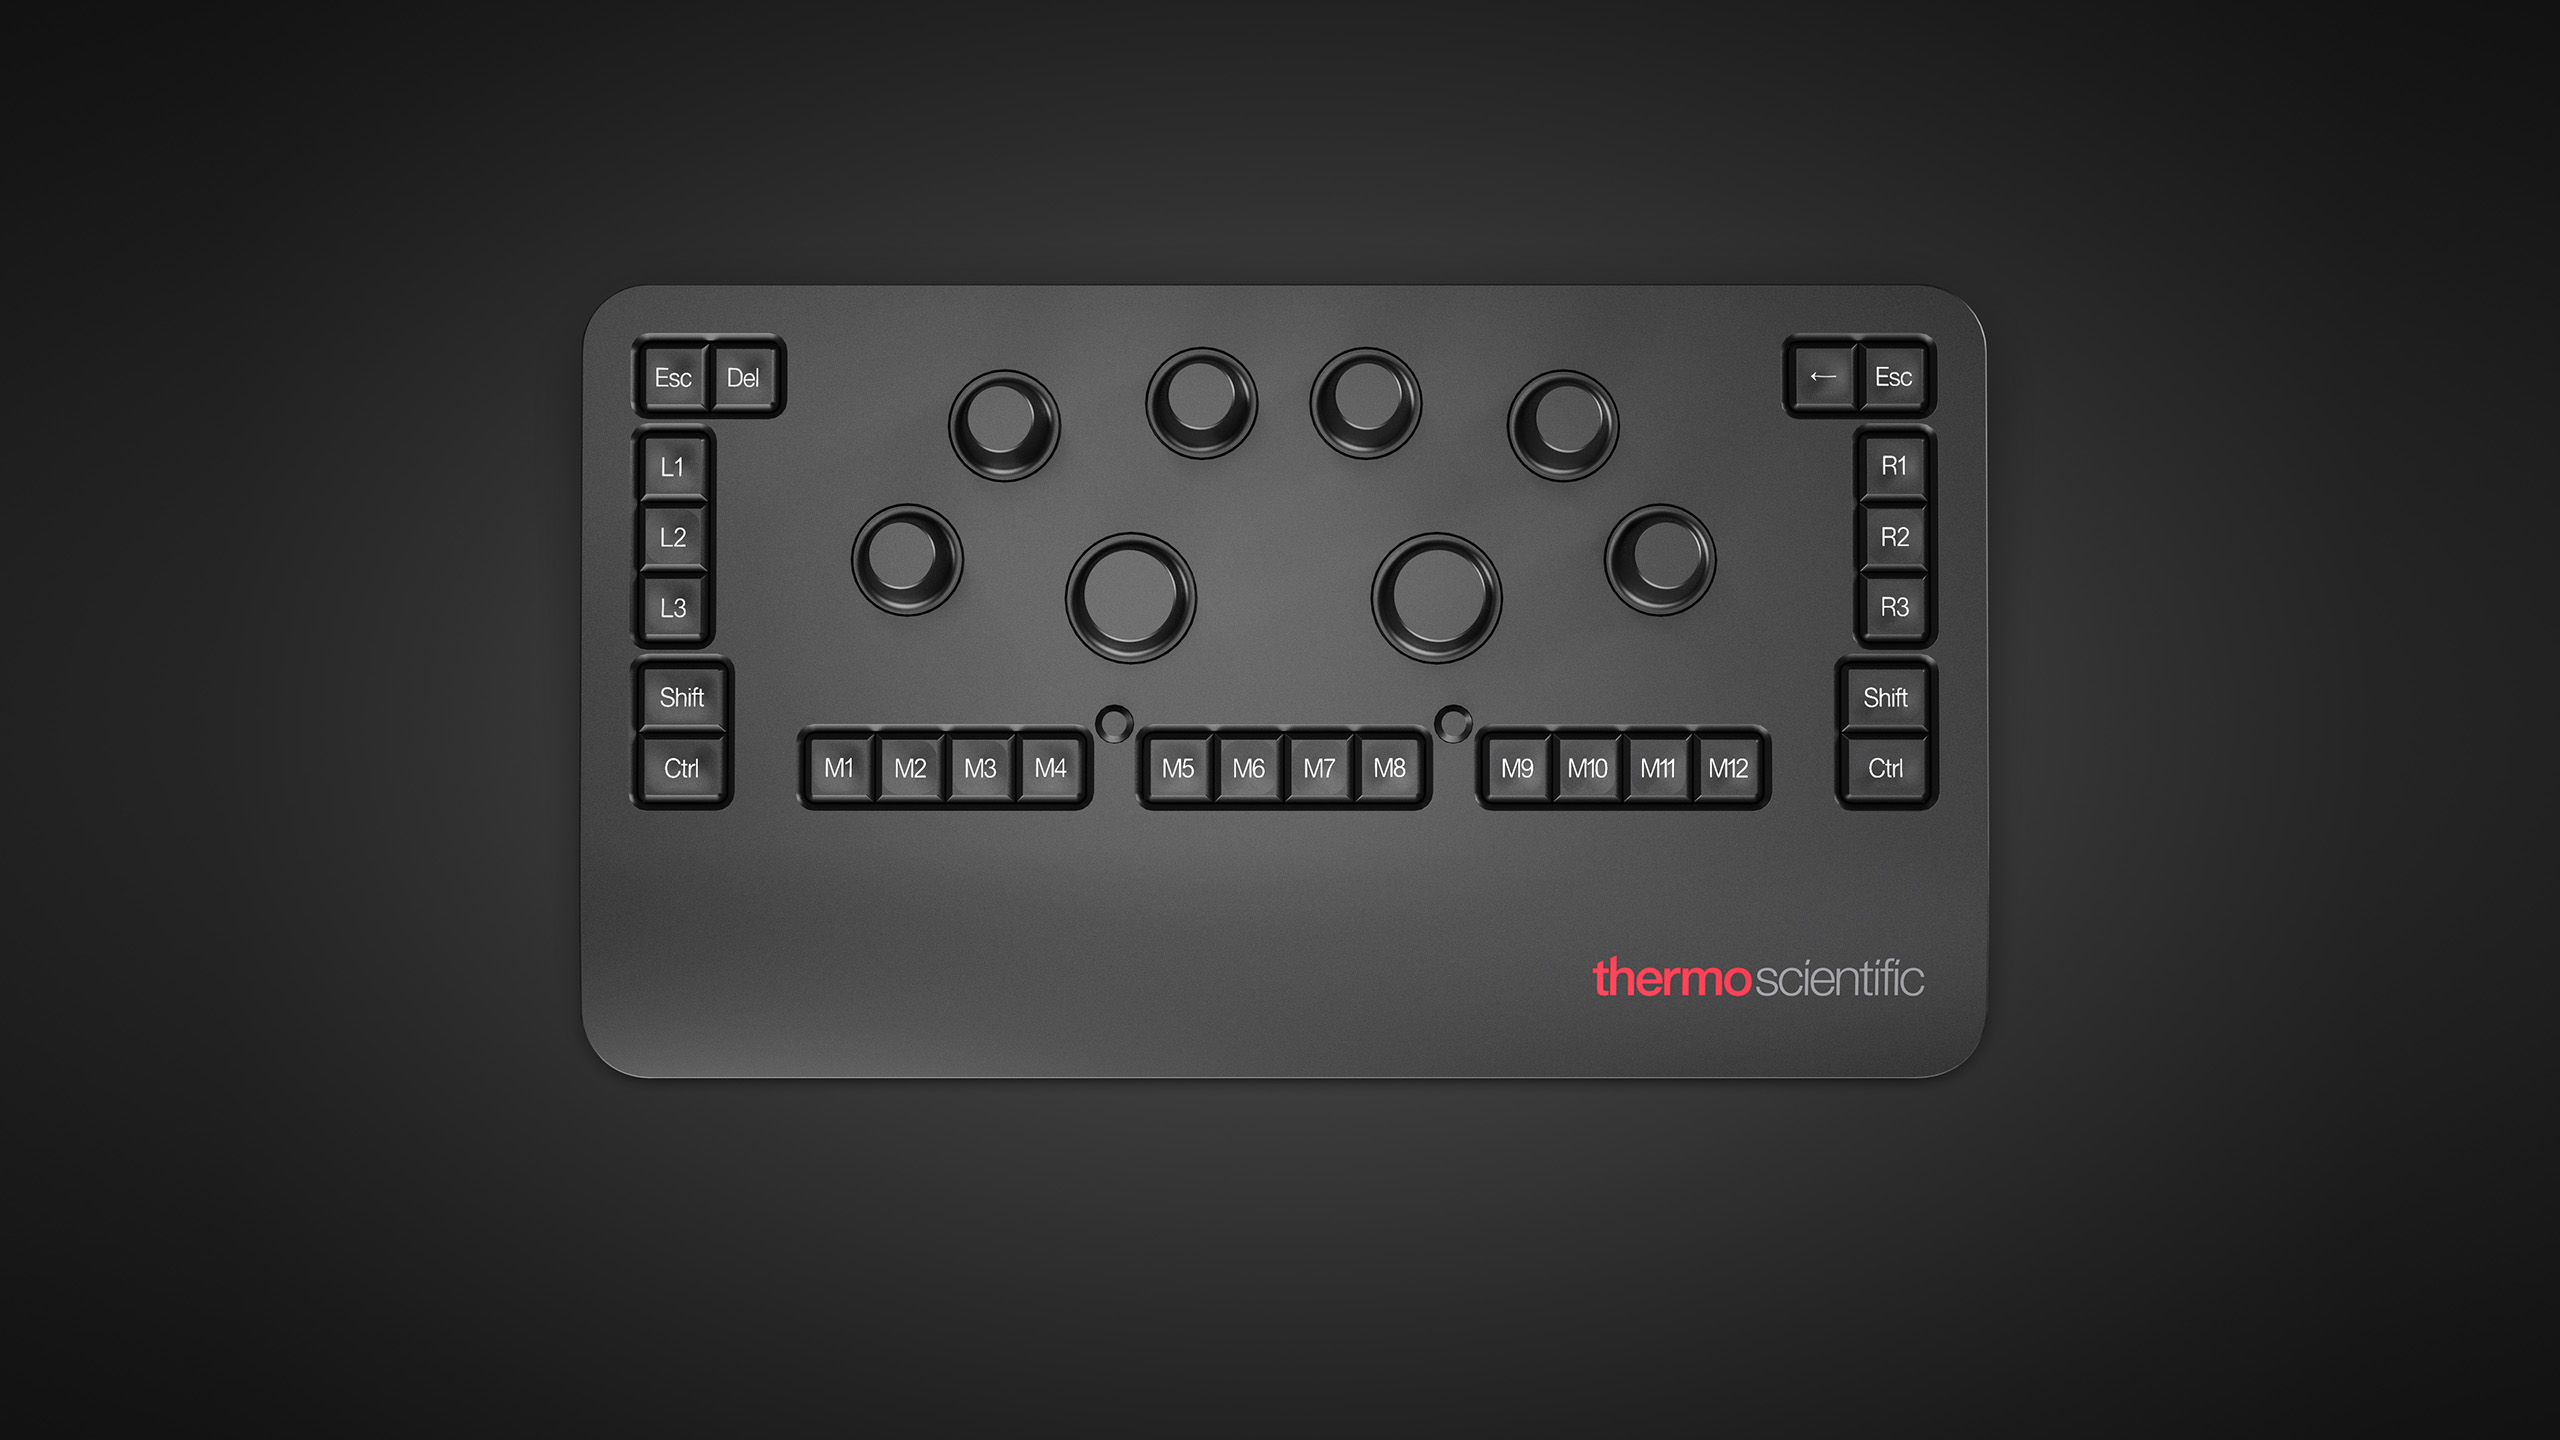 thermo scientific keyboard top